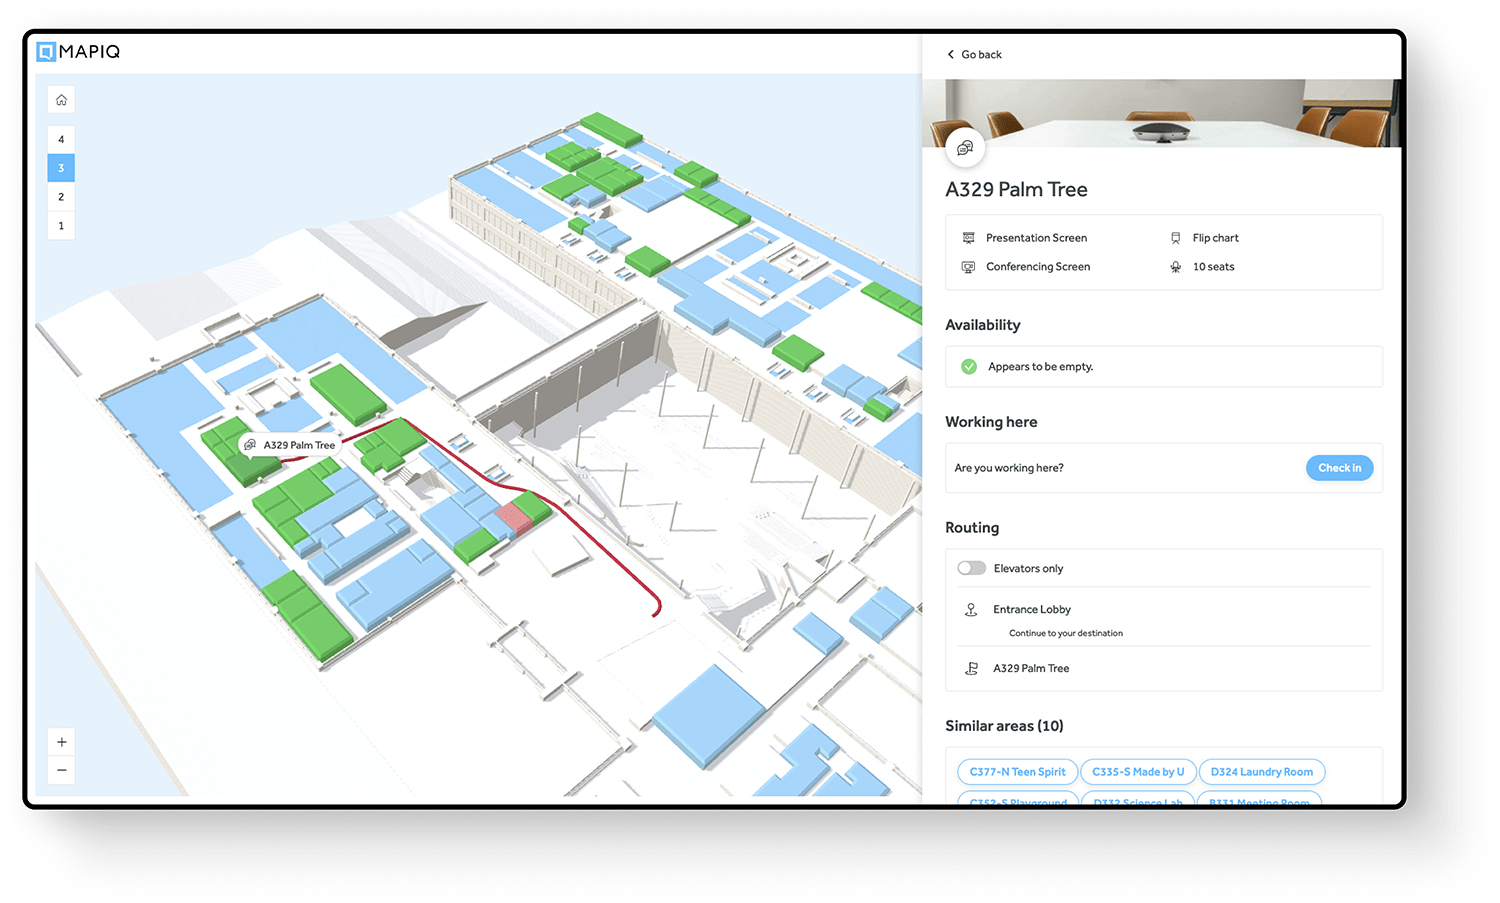 Visualize office floor plans in Mapiq's dashboard.